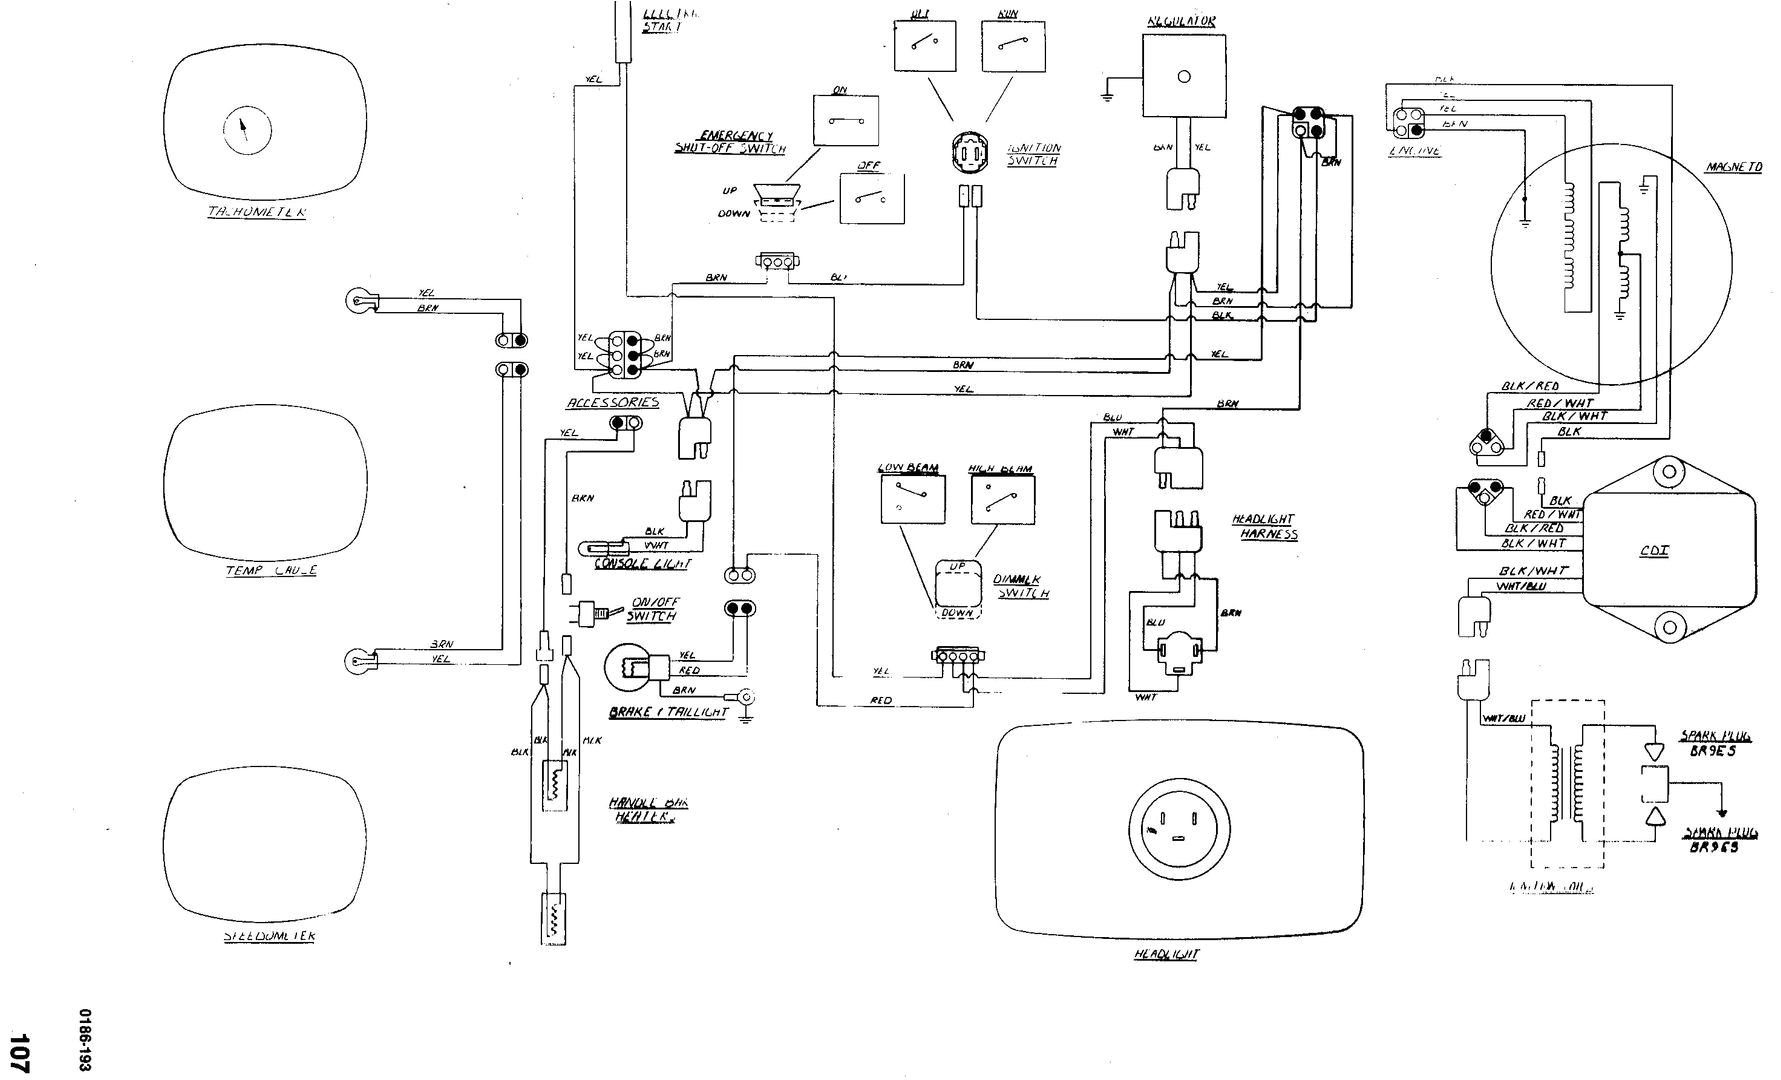 lynx 340 wiring diagram wiring schematic diagram 1 wiringgdiagram coplease help me find out why my